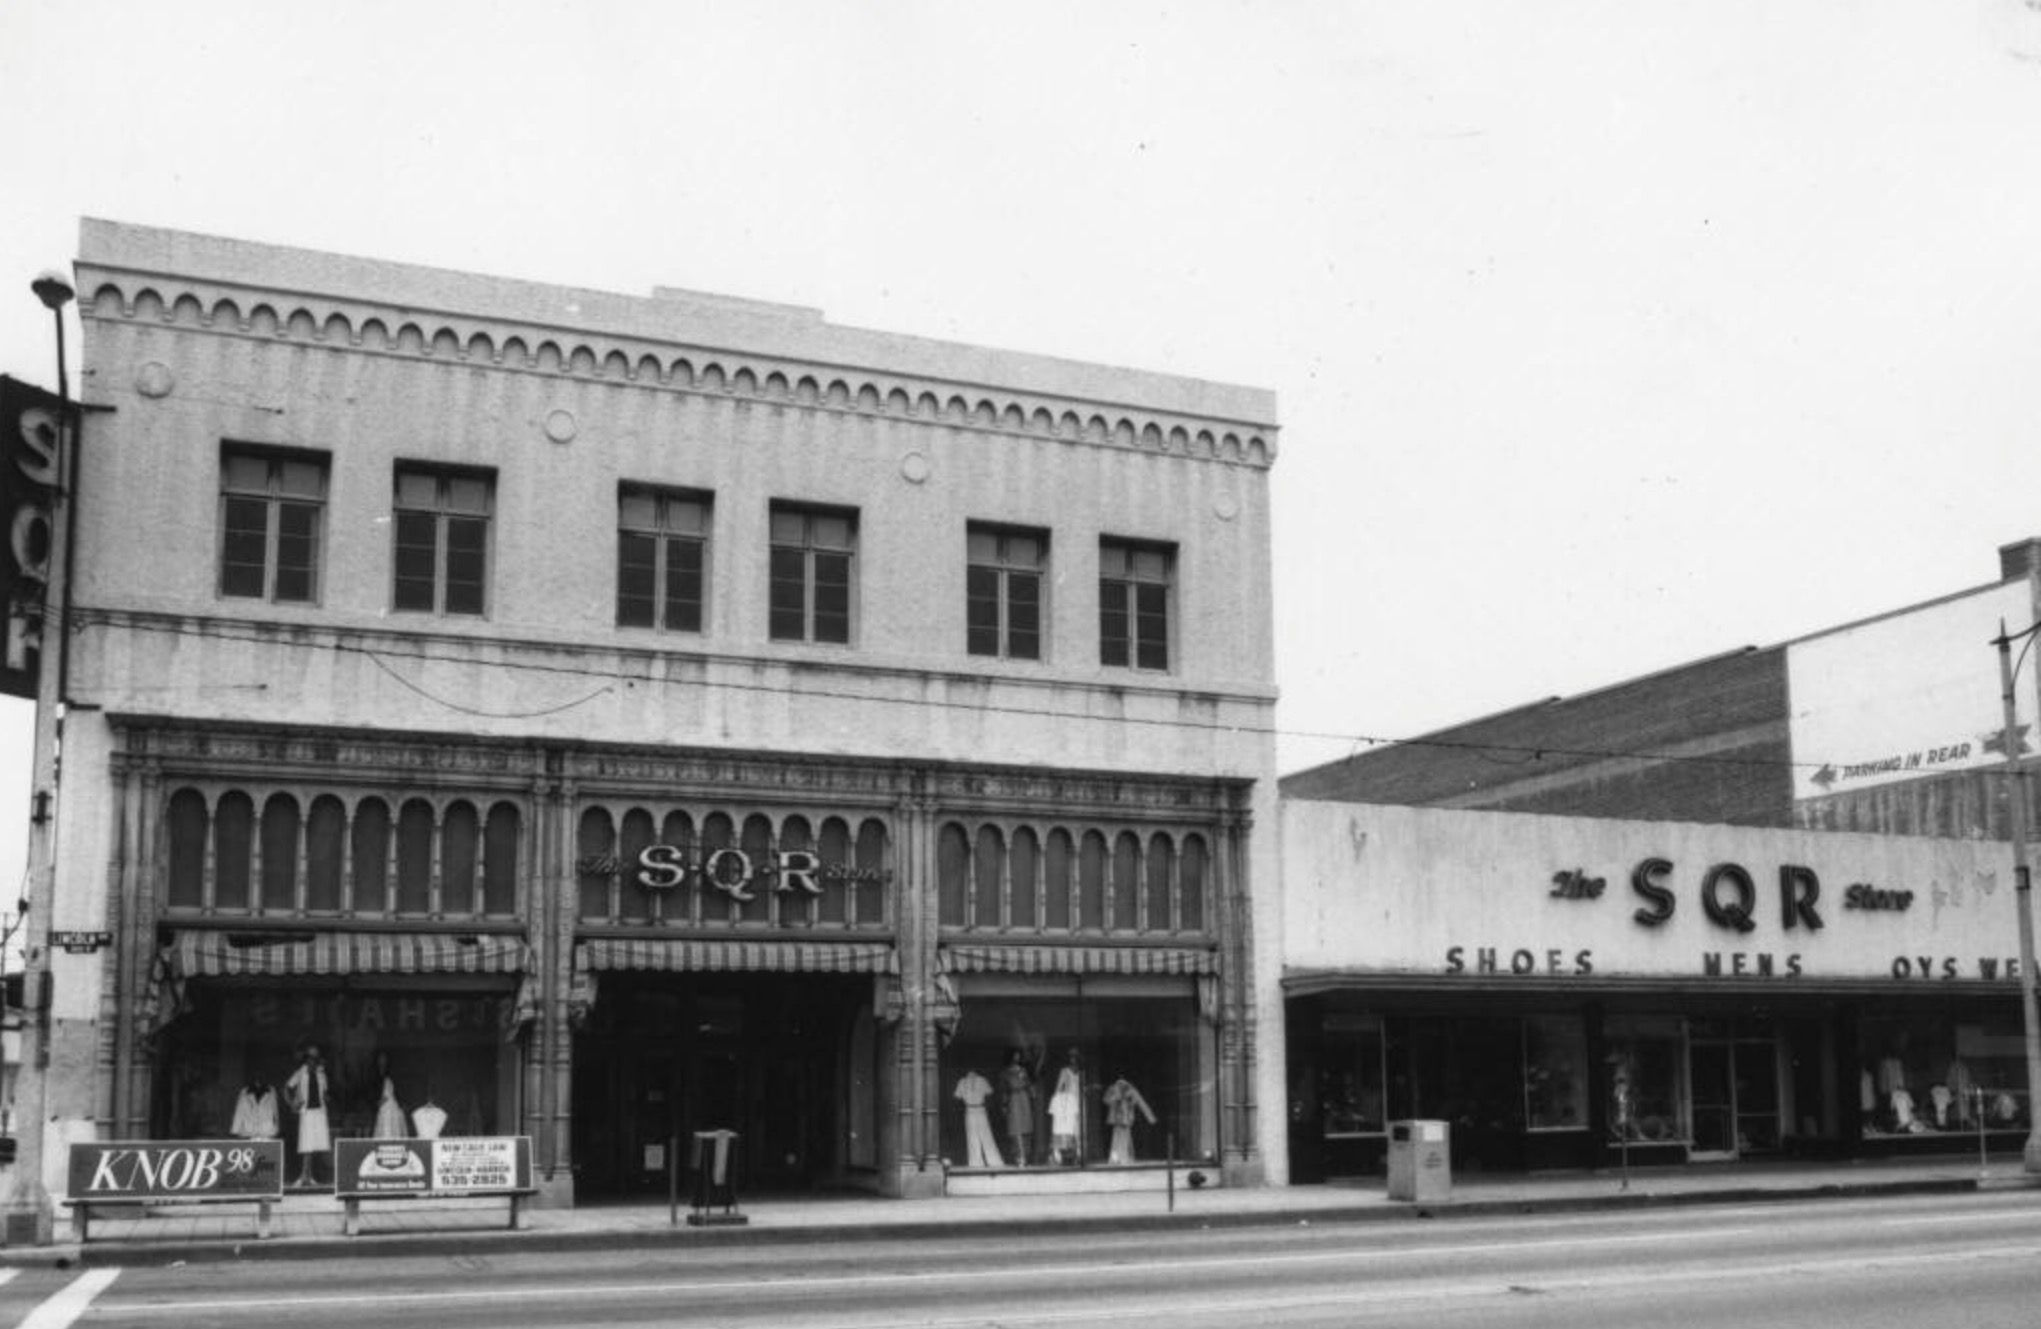 S.Q.R. Department Store, Lincoln Street, Anaheim